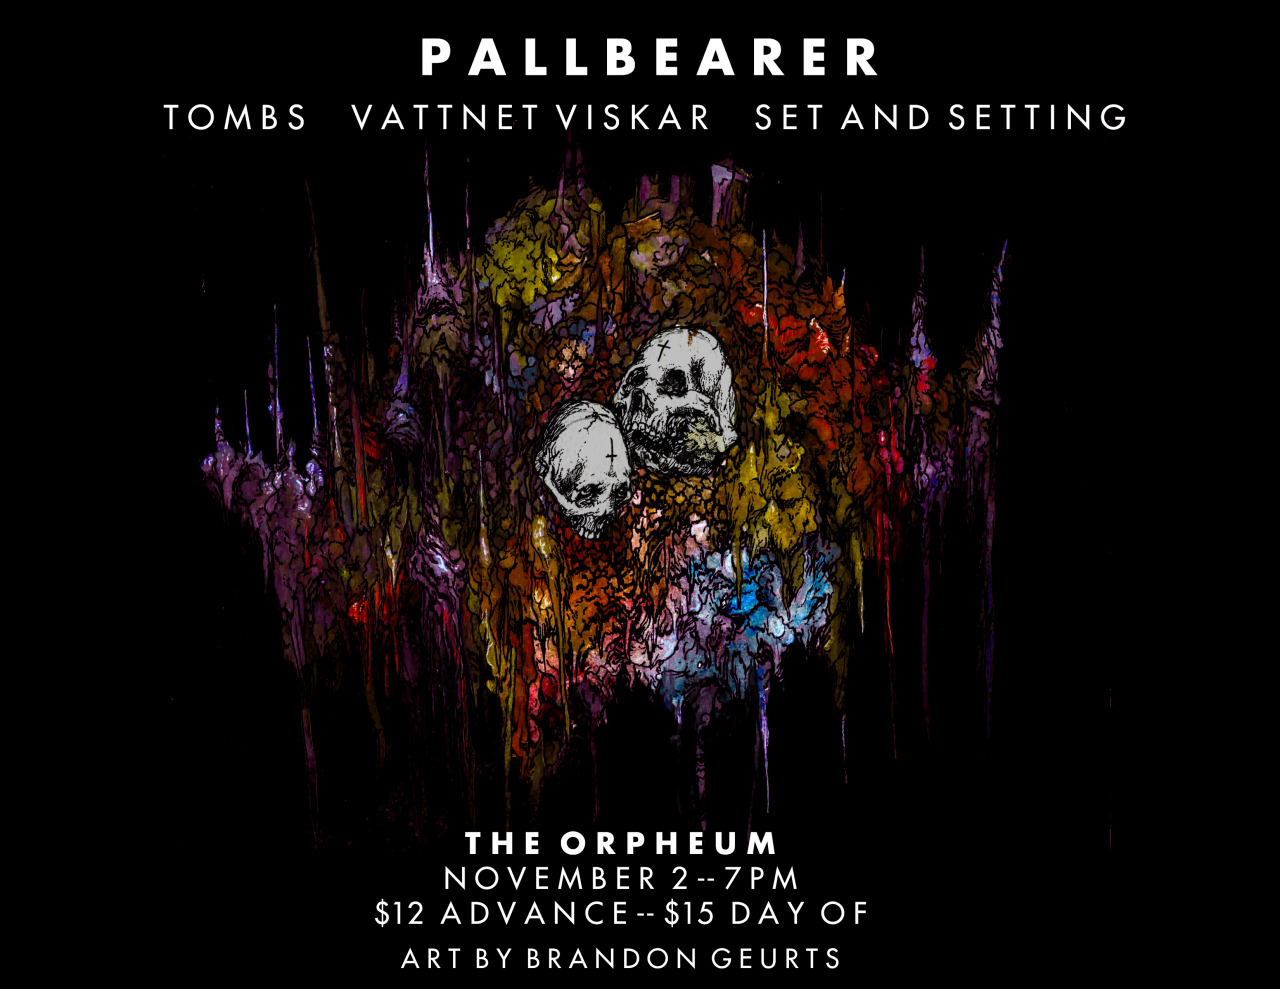 2014. Flyer for Pallbearer at The Orpheum. Tampa, FL.